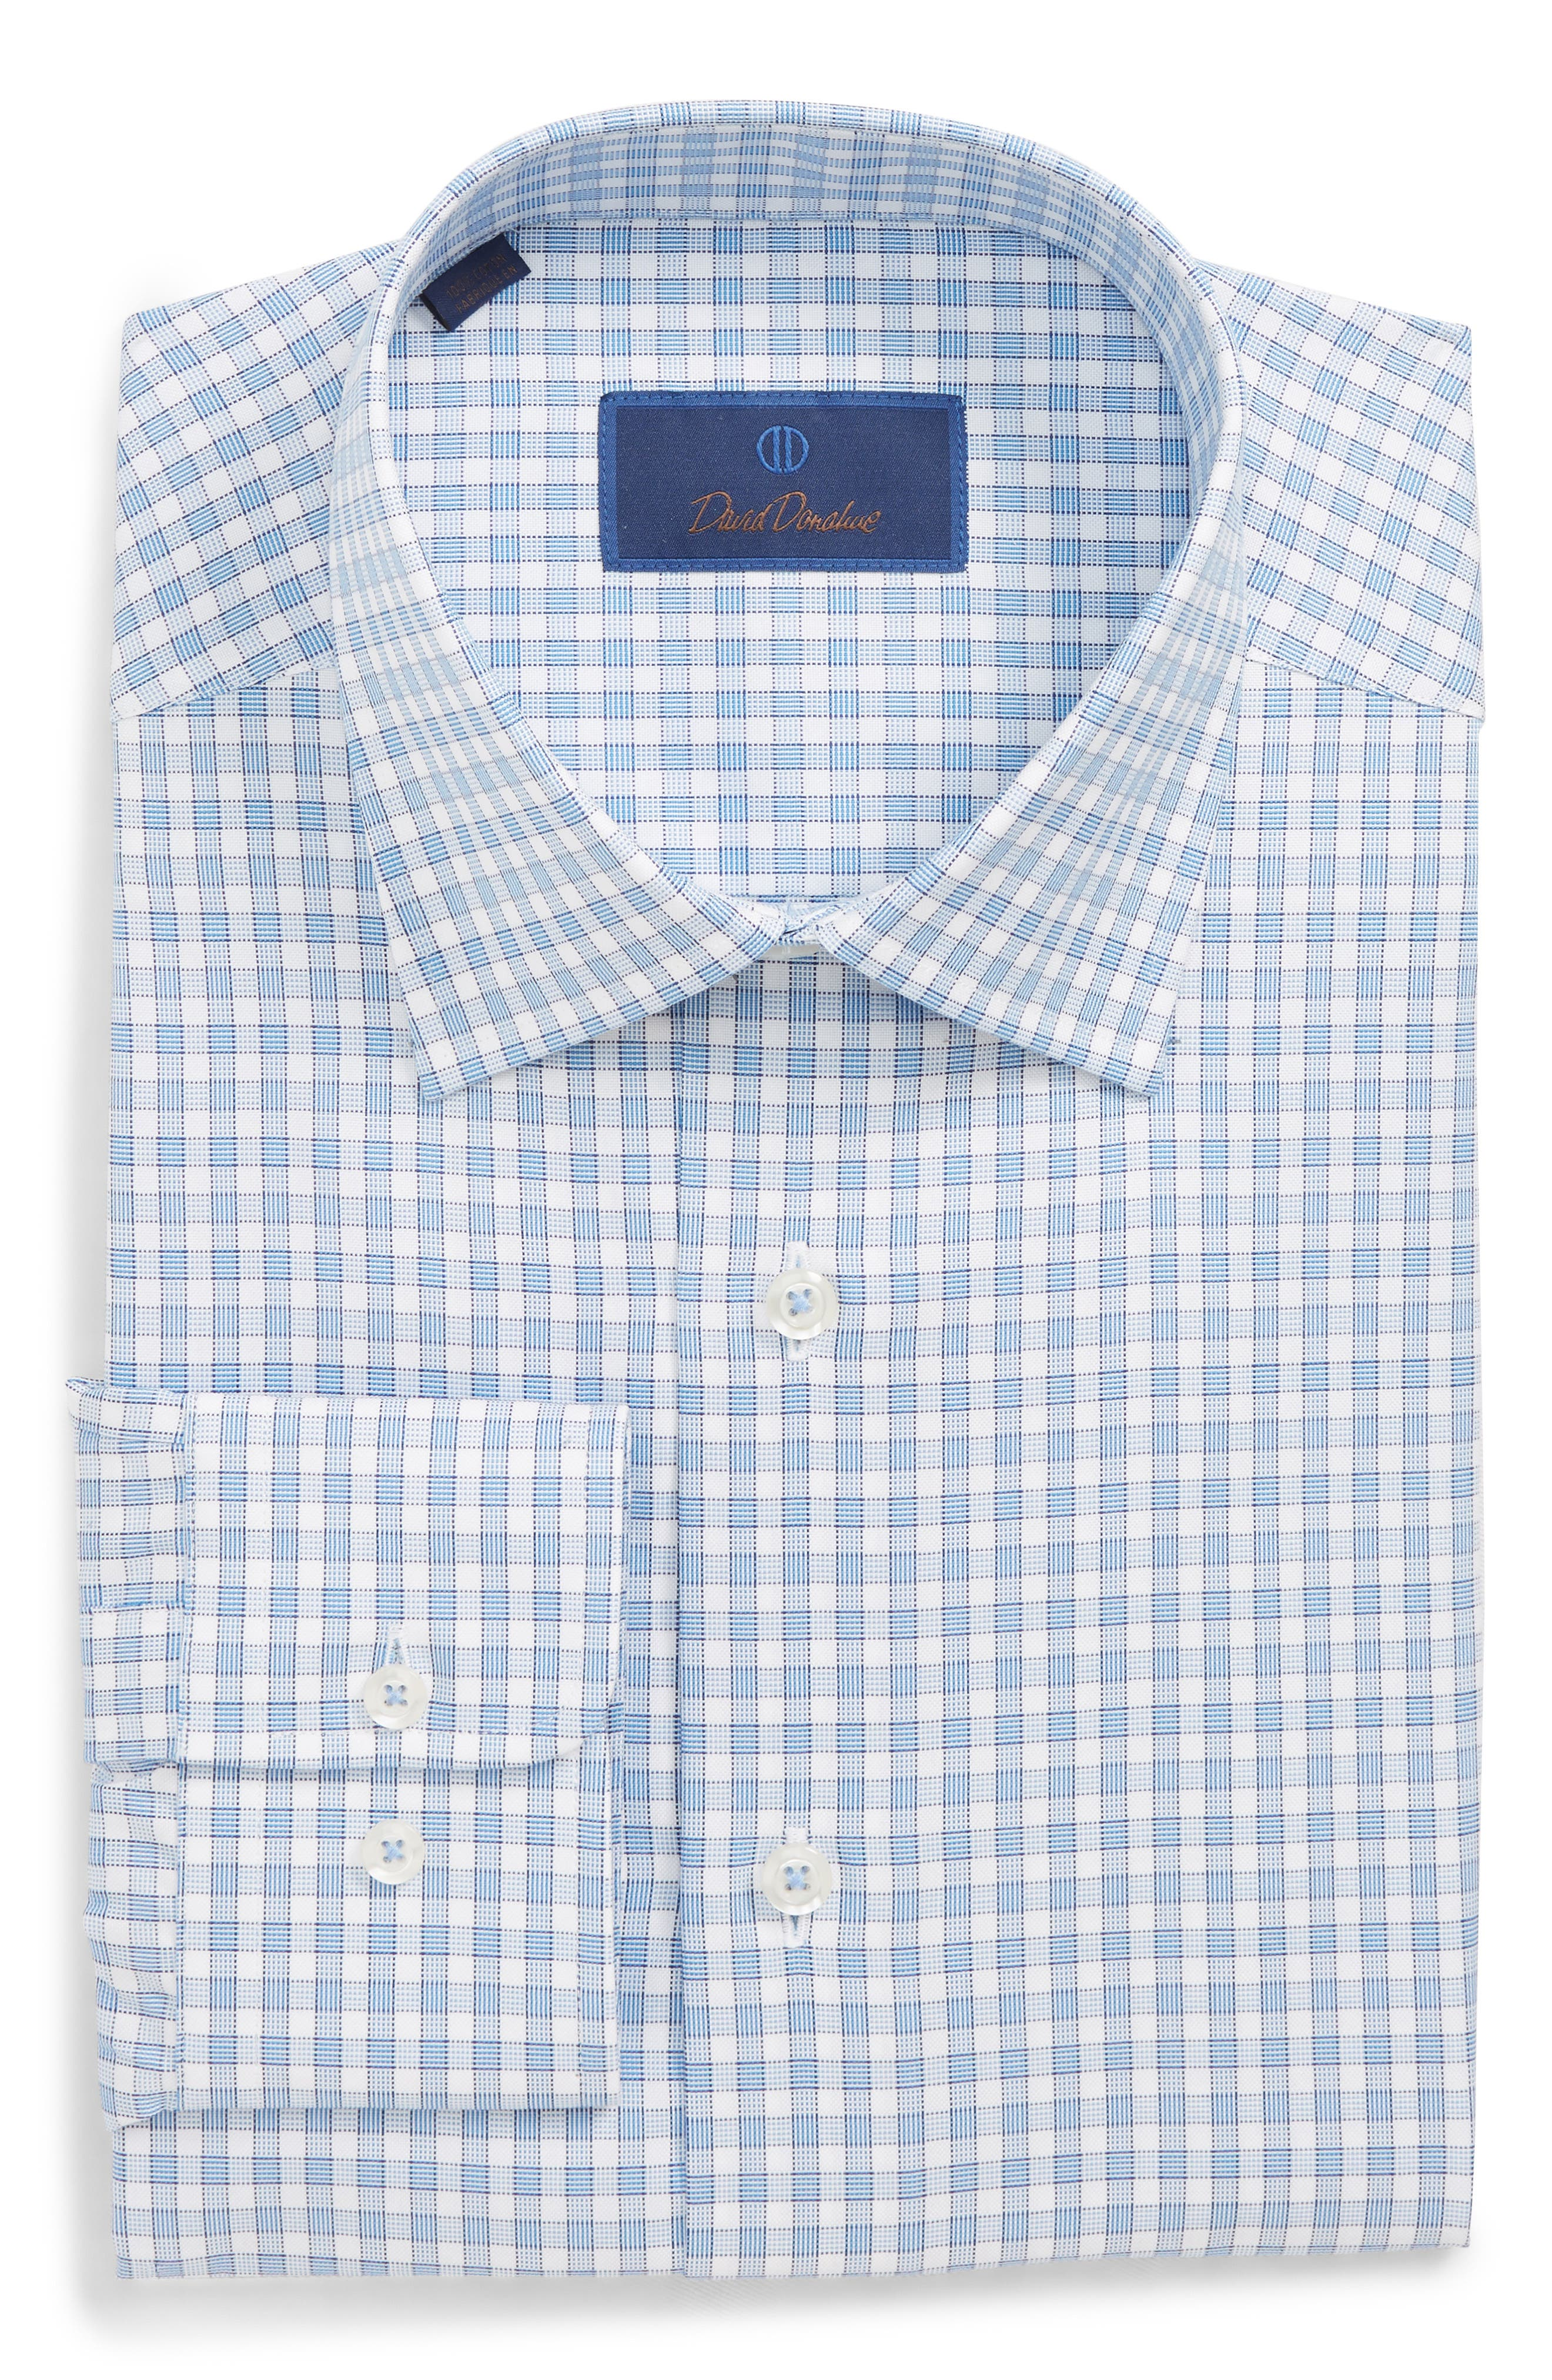 Regular Fit Plaid Dress Shirt,                         Main,                         color, 423